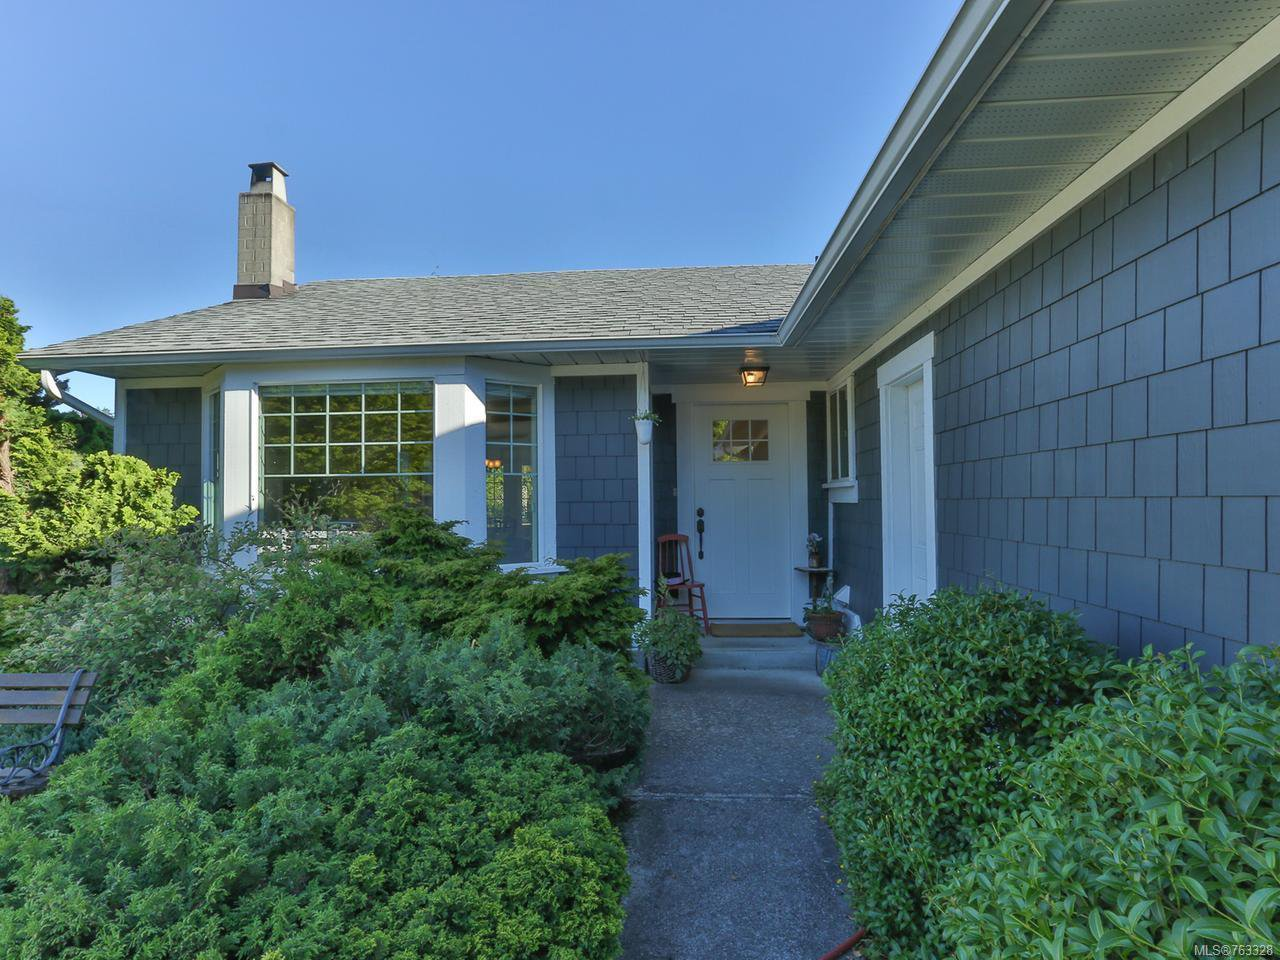 Main Photo: 504 W First Ave in QUALICUM BEACH: PQ Qualicum Beach House for sale (Parksville/Qualicum)  : MLS®# 763328